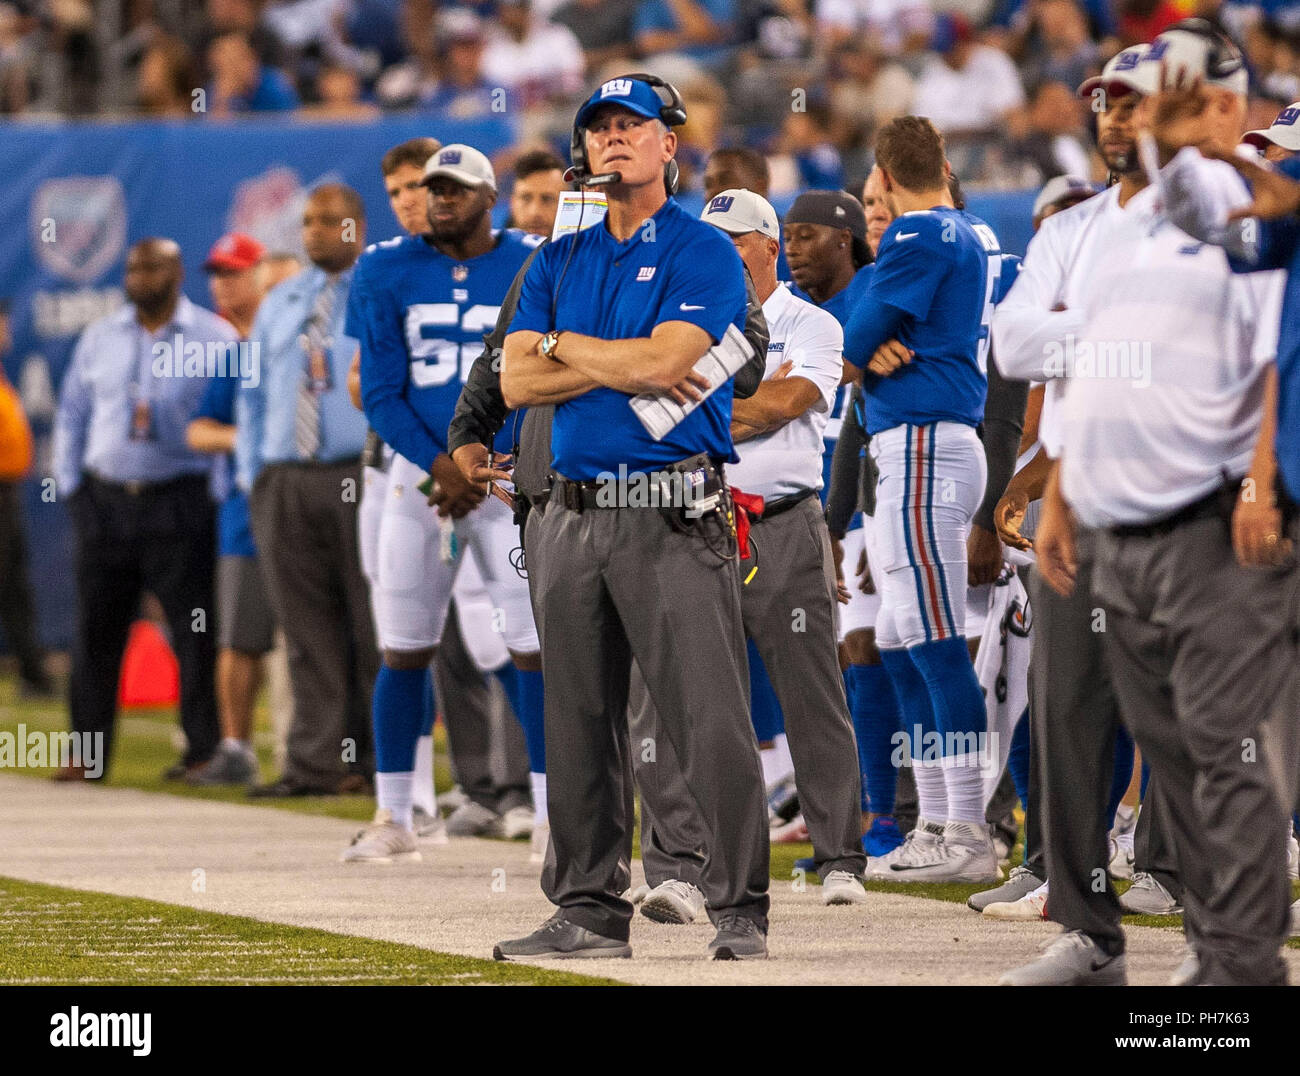 August 31, 2018 - East Rutherford, New Jersey, U.S. - New York Giants head coach Pat Shurmur looks at the scoreboard during a preseason game between the New England Patriots and the New York Giants at MetLife Stadium in East Rutherford, New Jersey. Duncan Williams/CSM - Stock Image